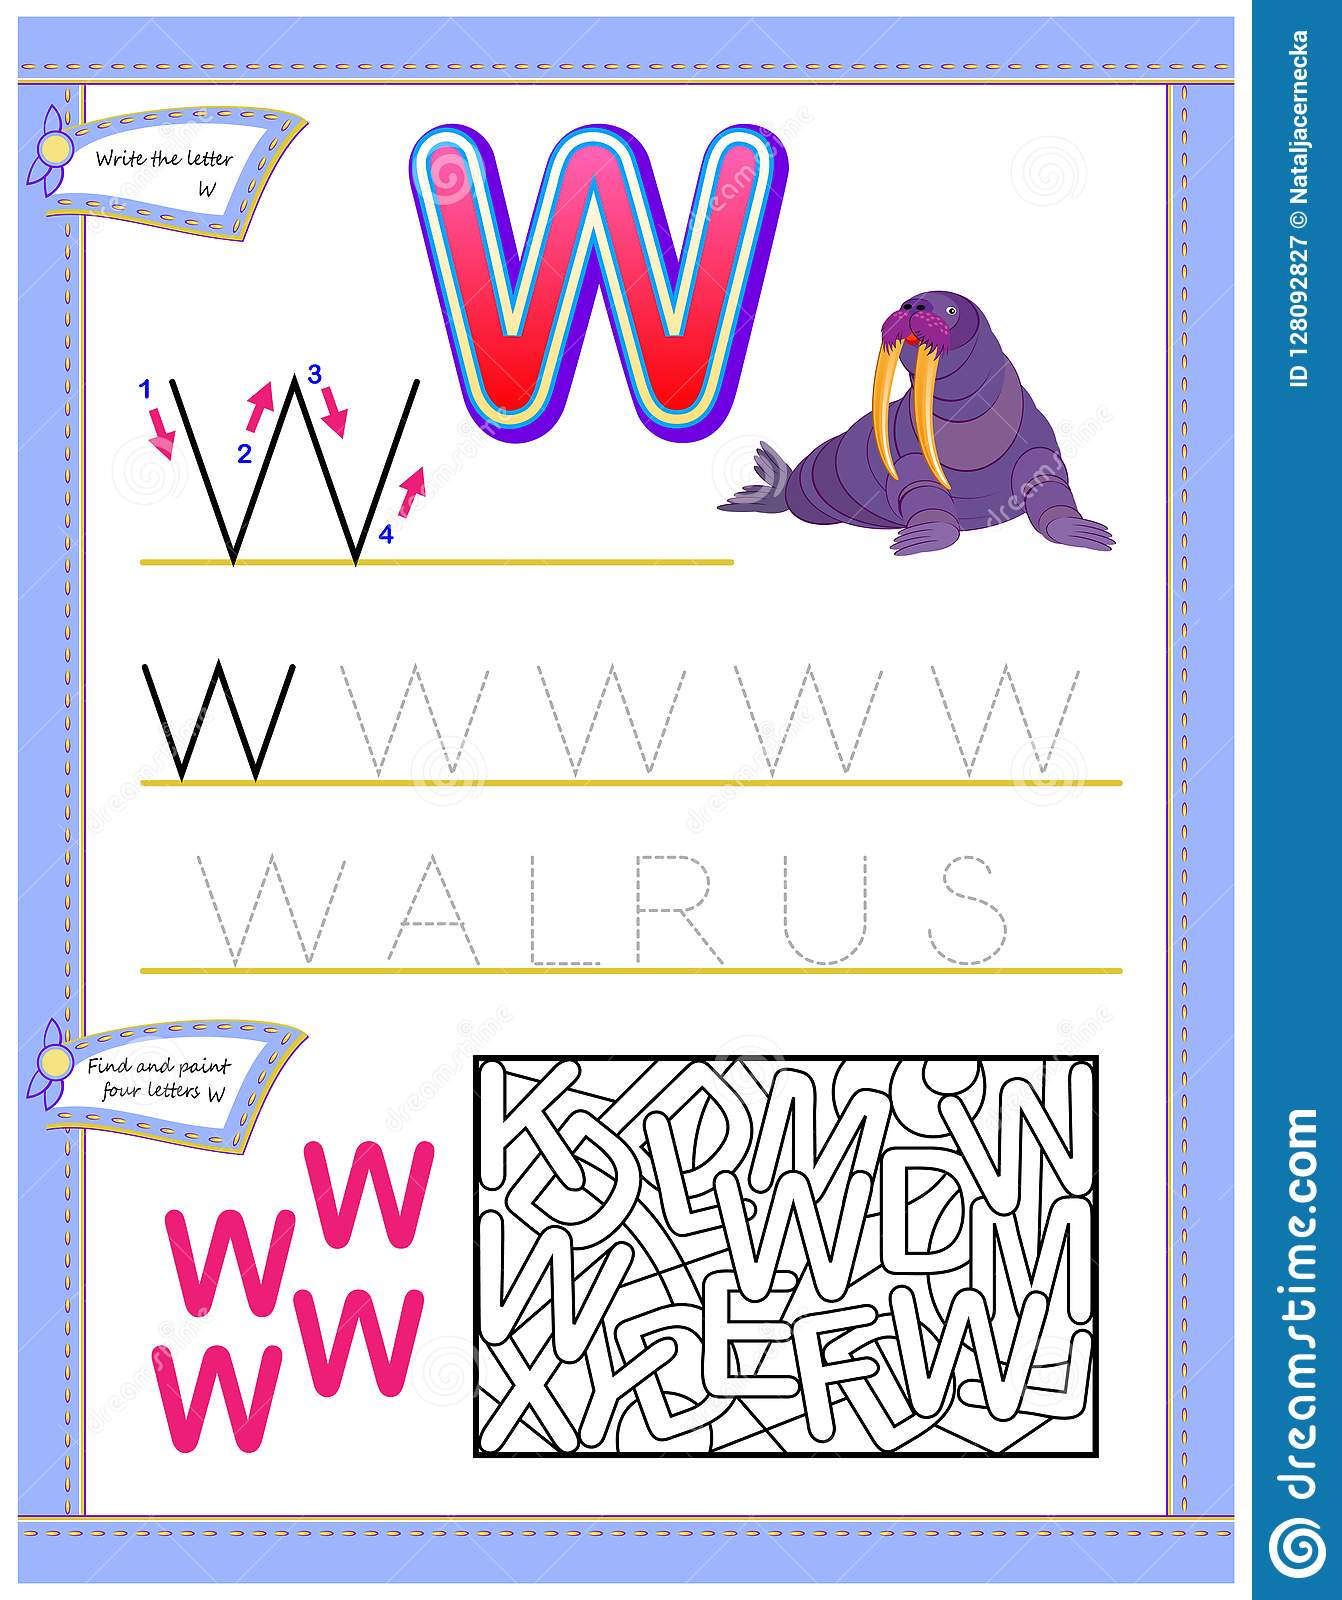 Worksheet For Kids With Letter W For Study English